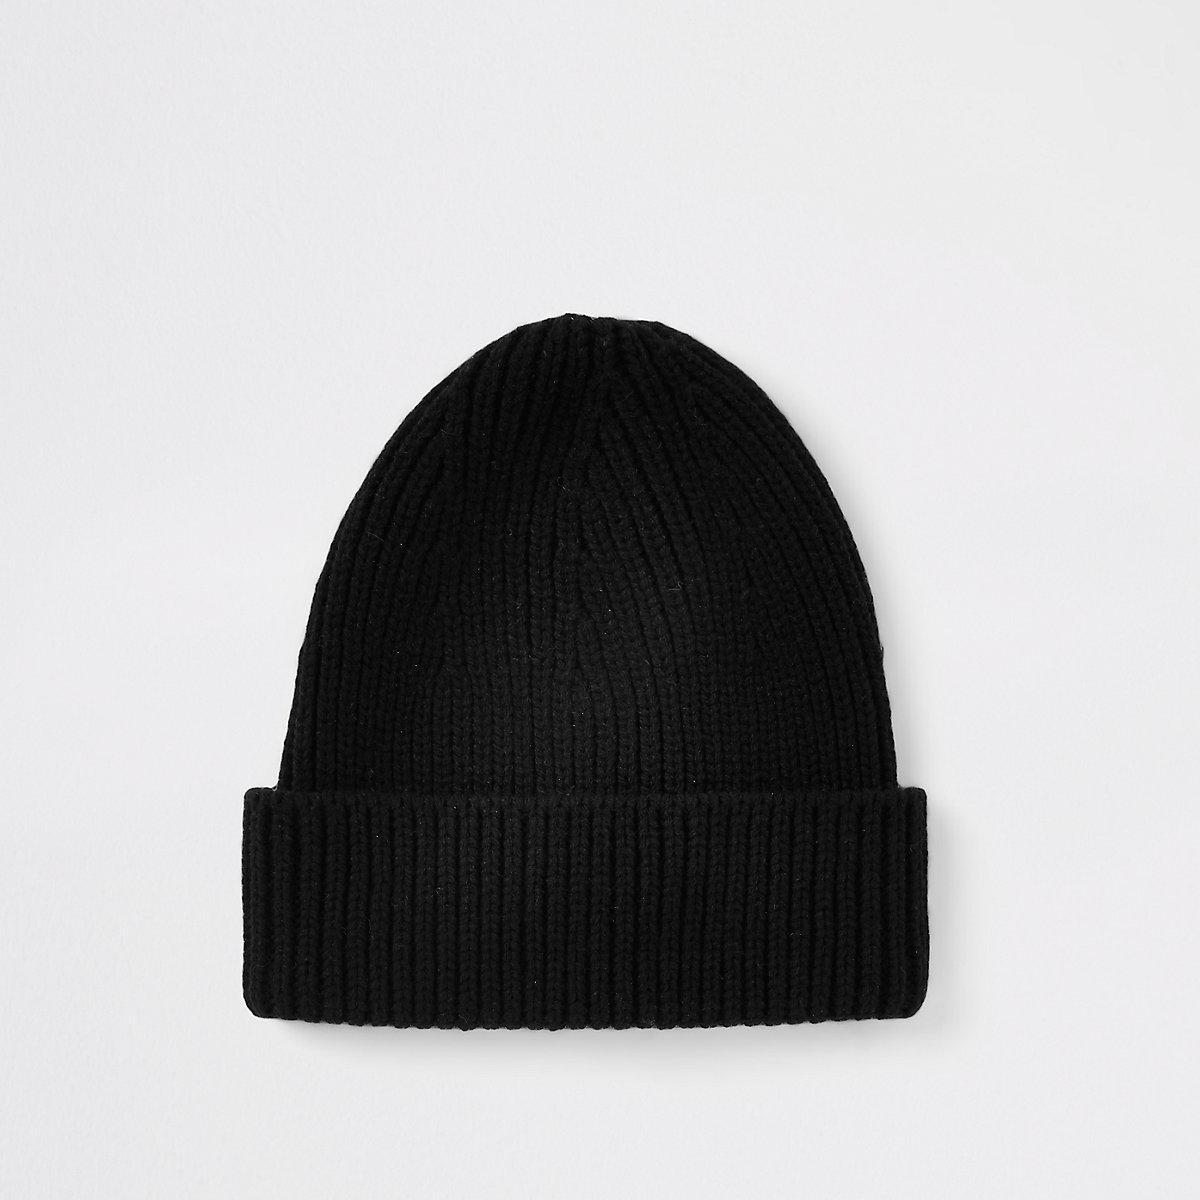 Black knit fisherman beanie hat